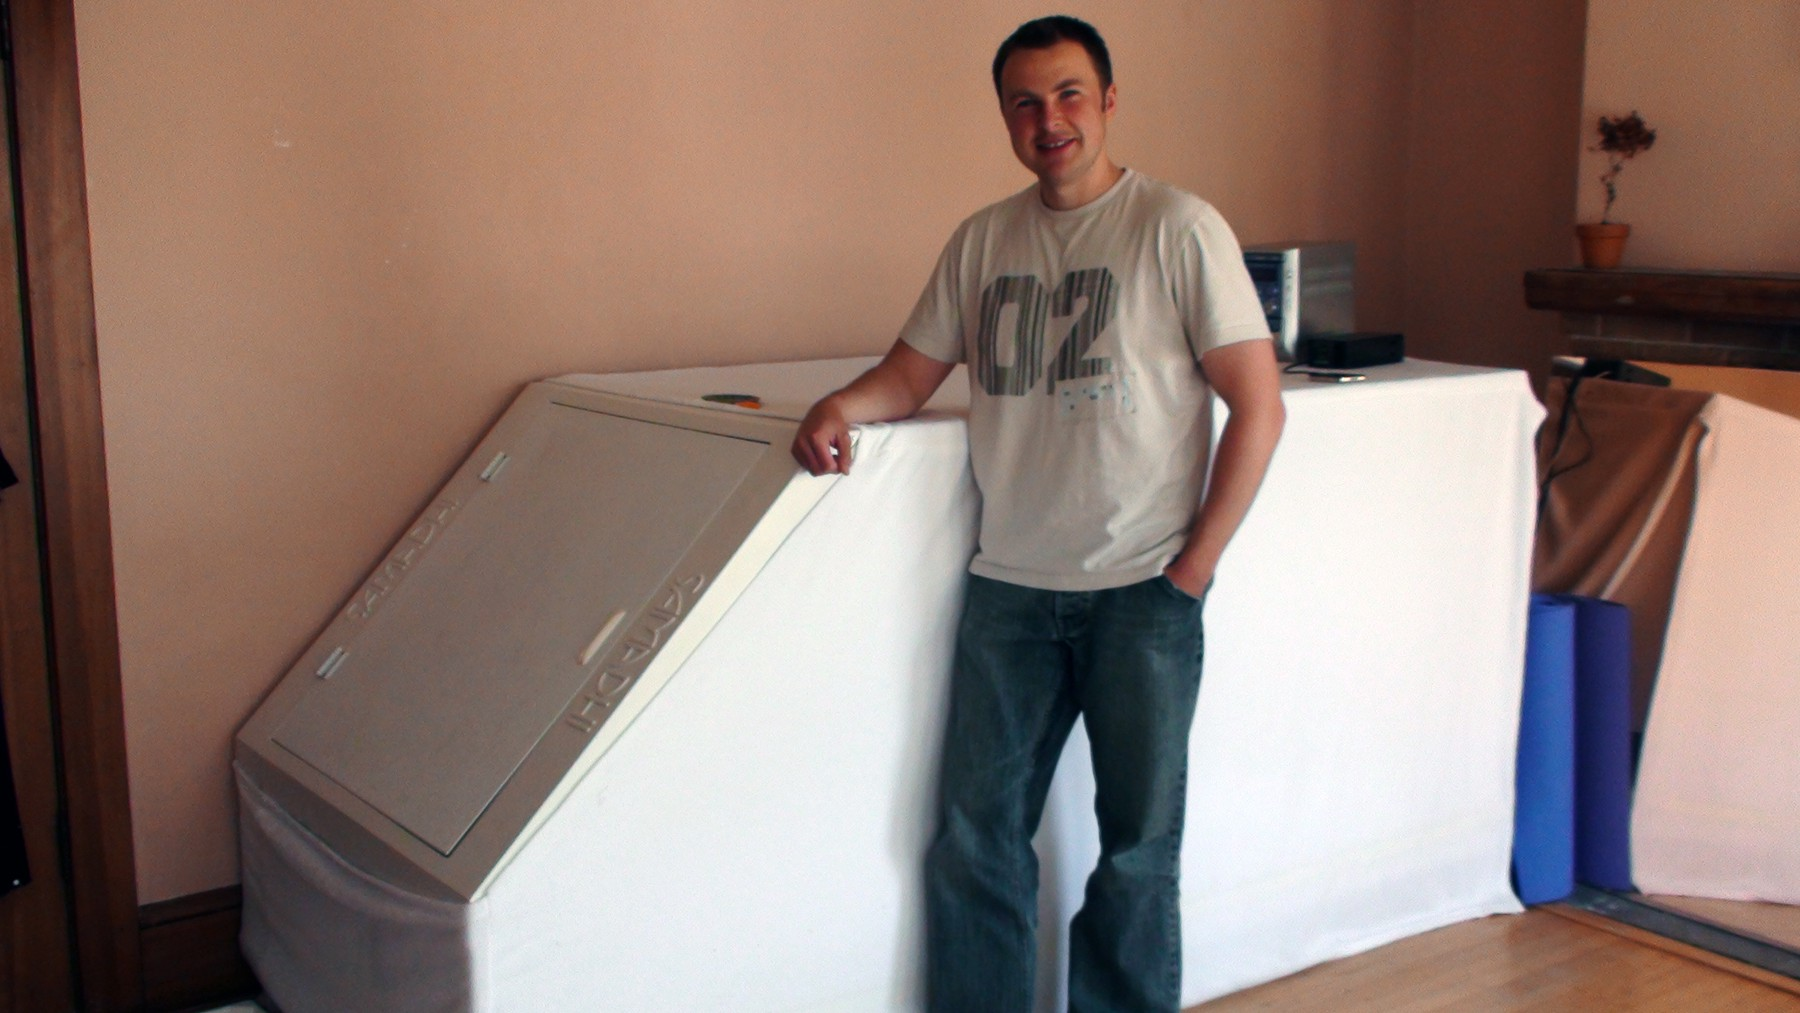 Ernest Semerda next to the classic design of a Isolation Tank